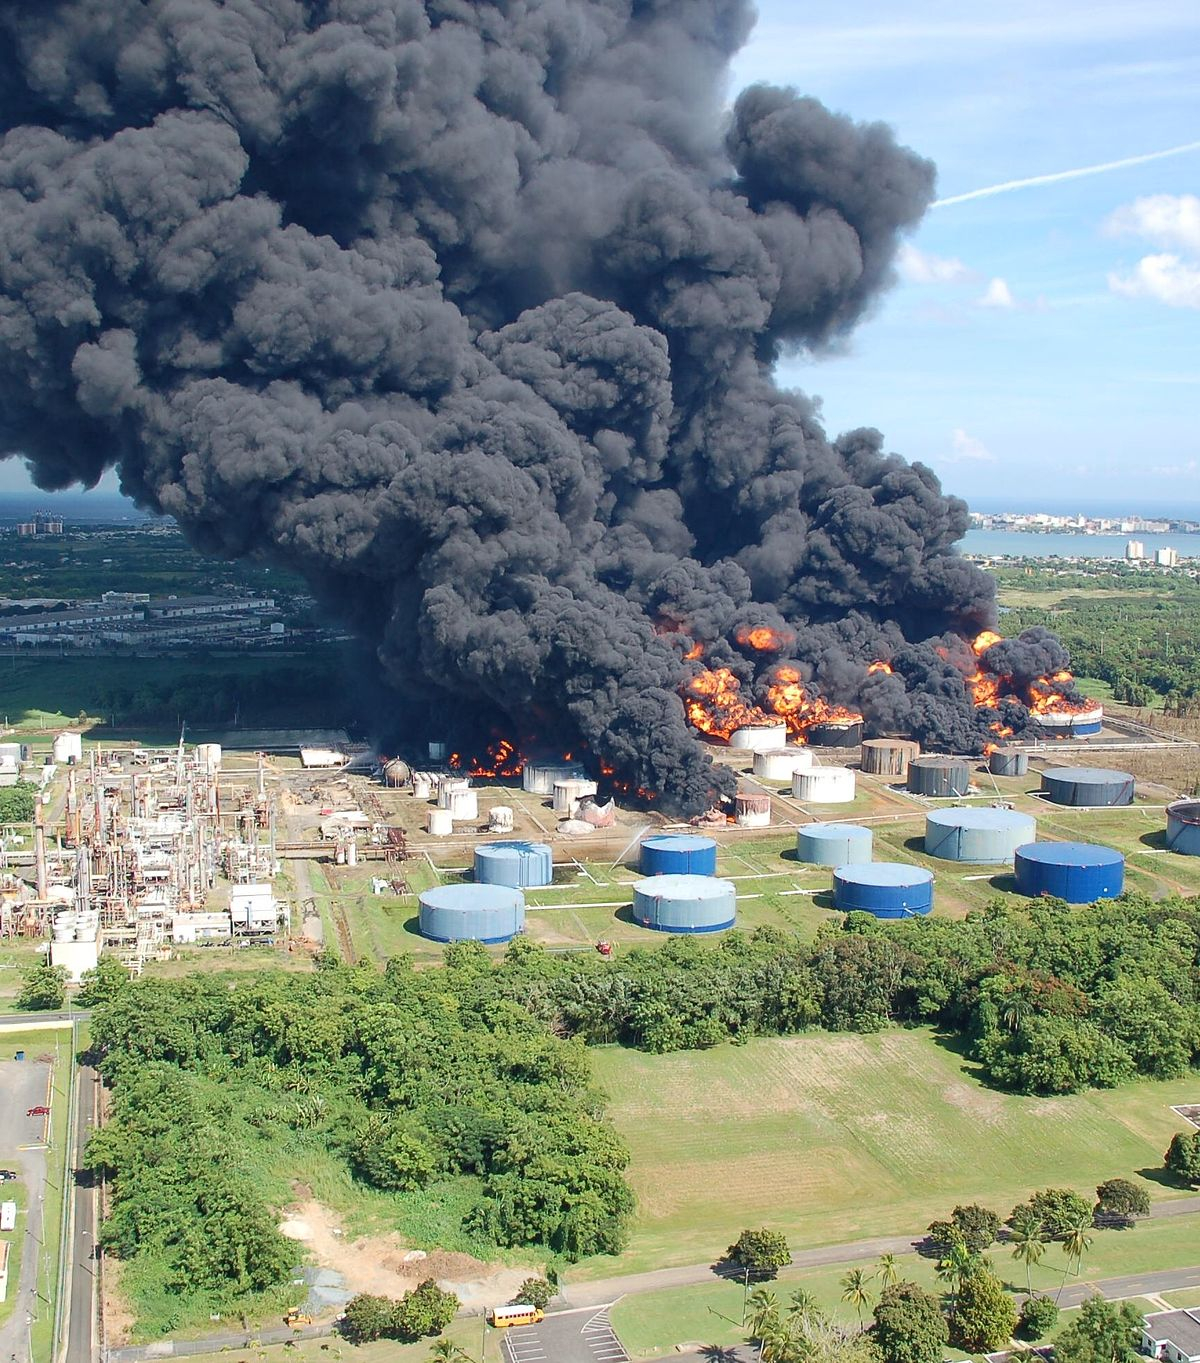 2009 tank farm fire in Puerto Rico.